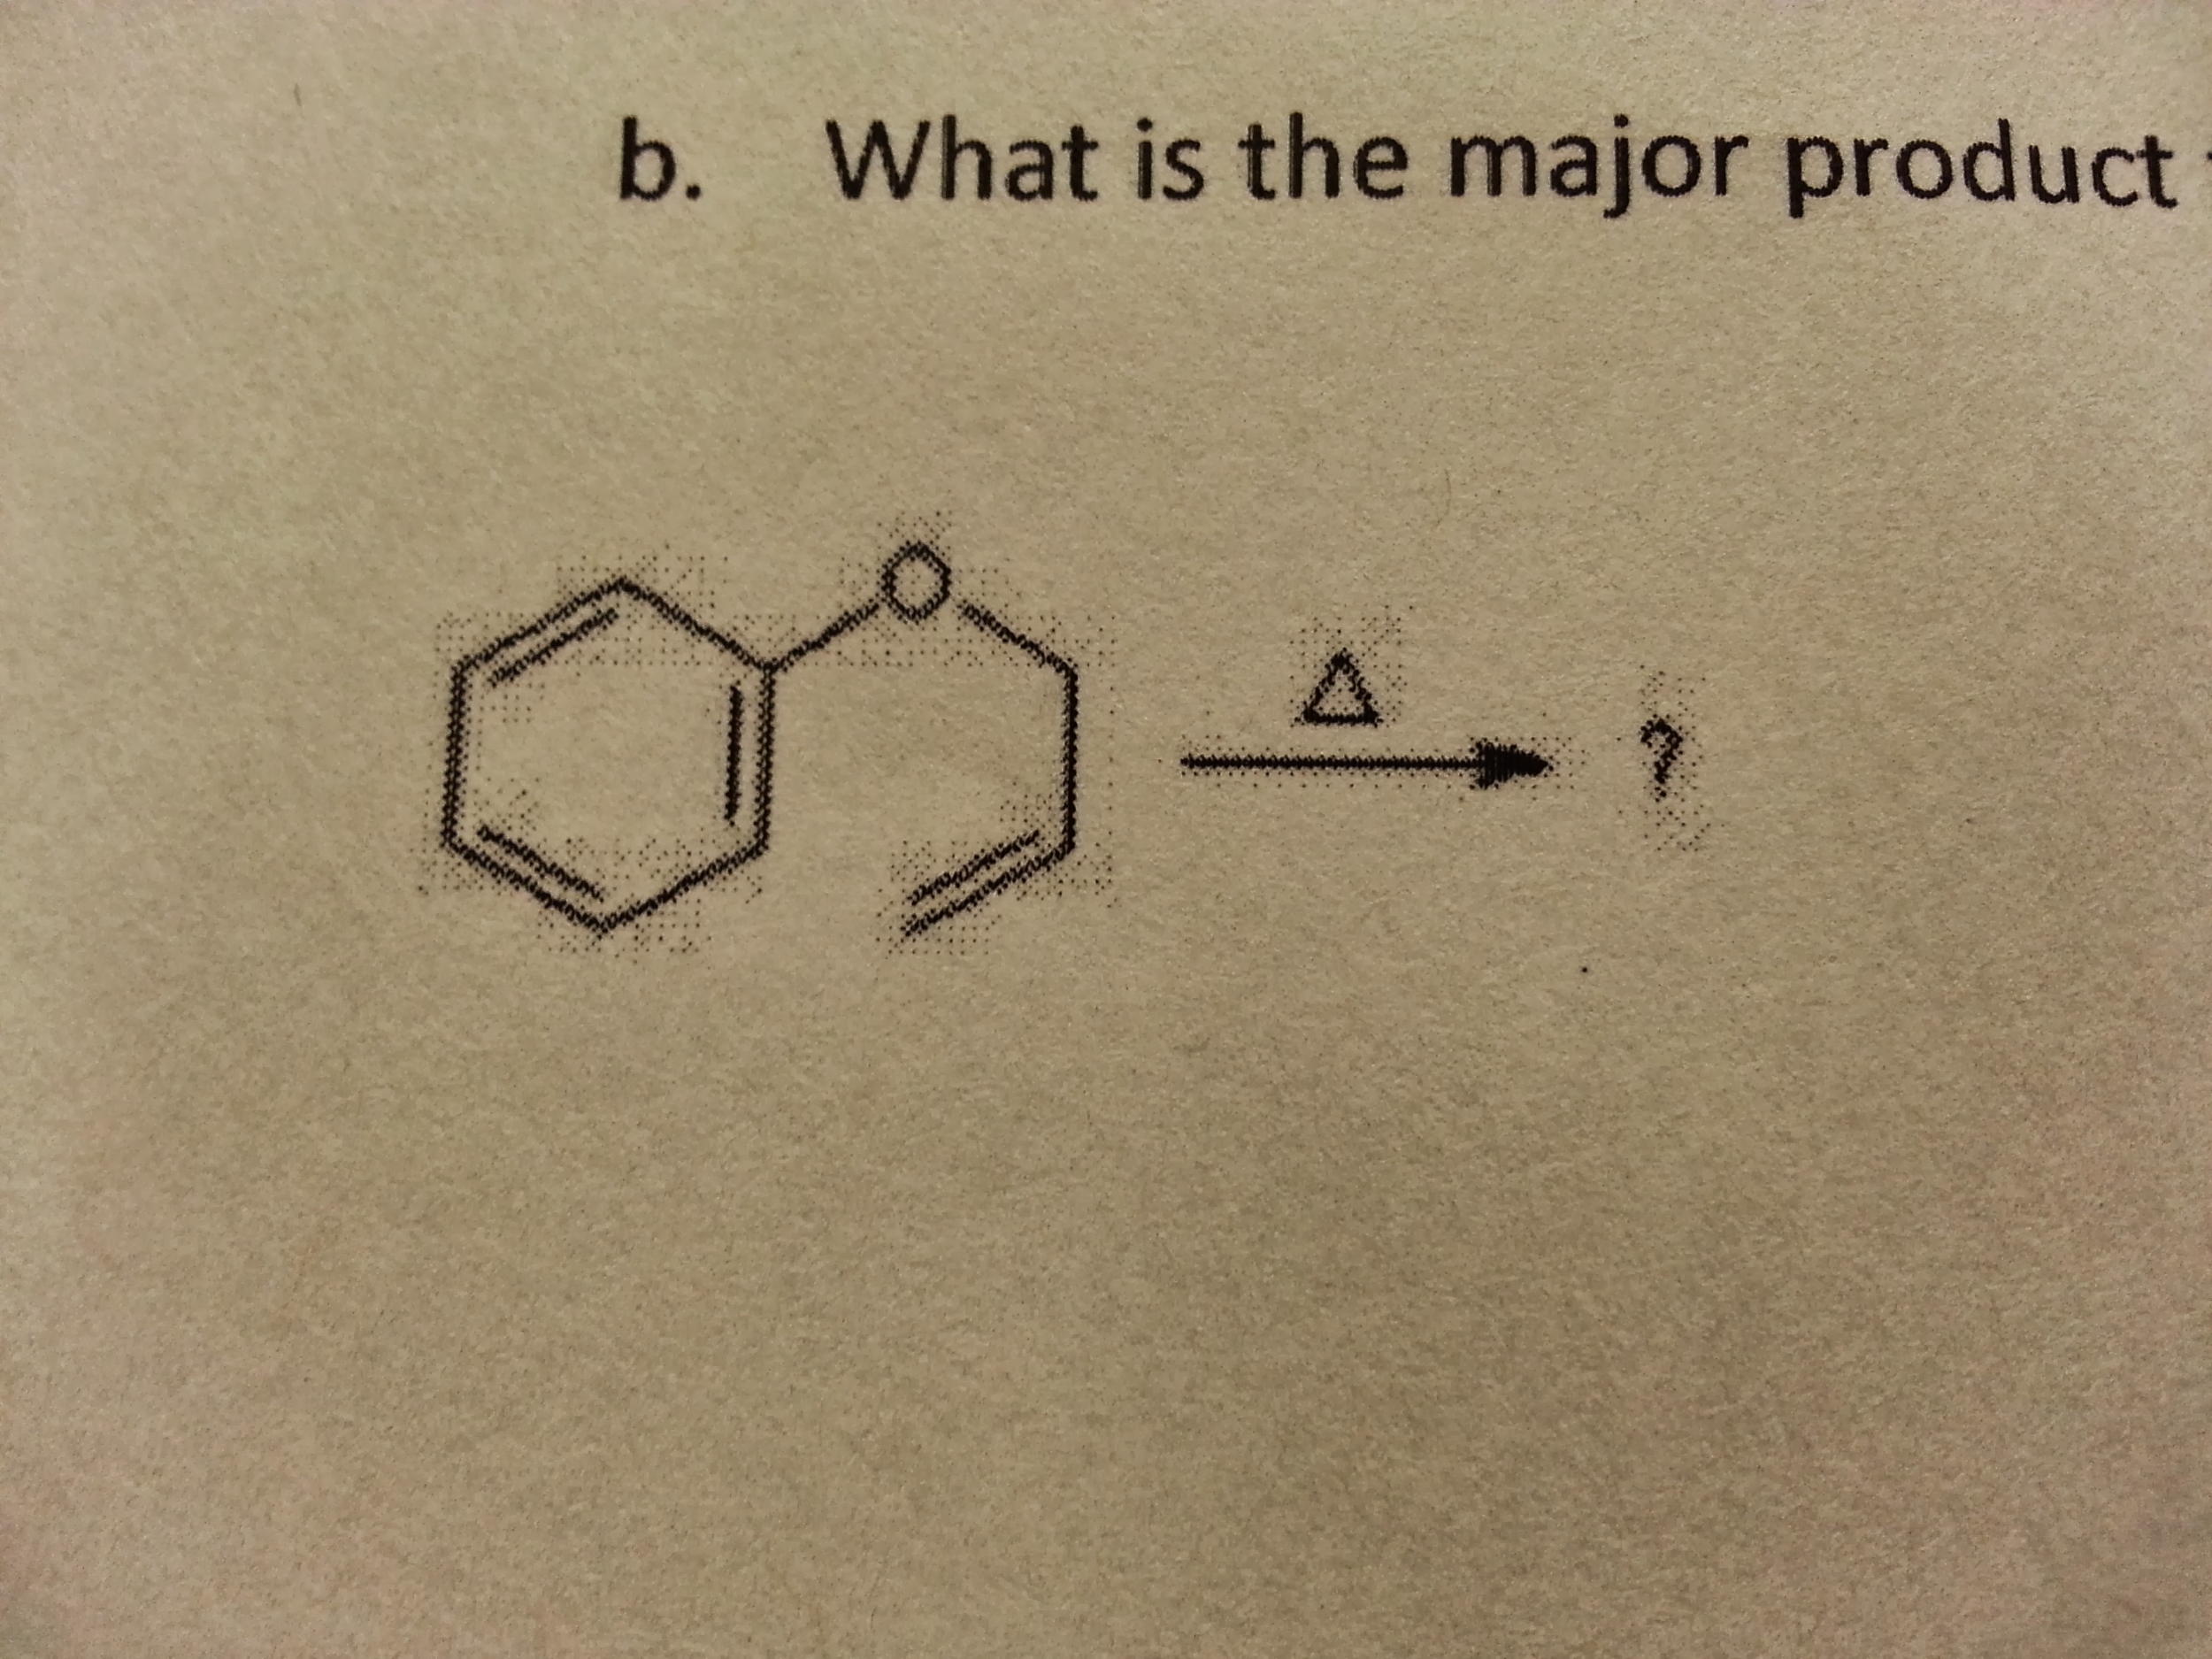 What is the major product